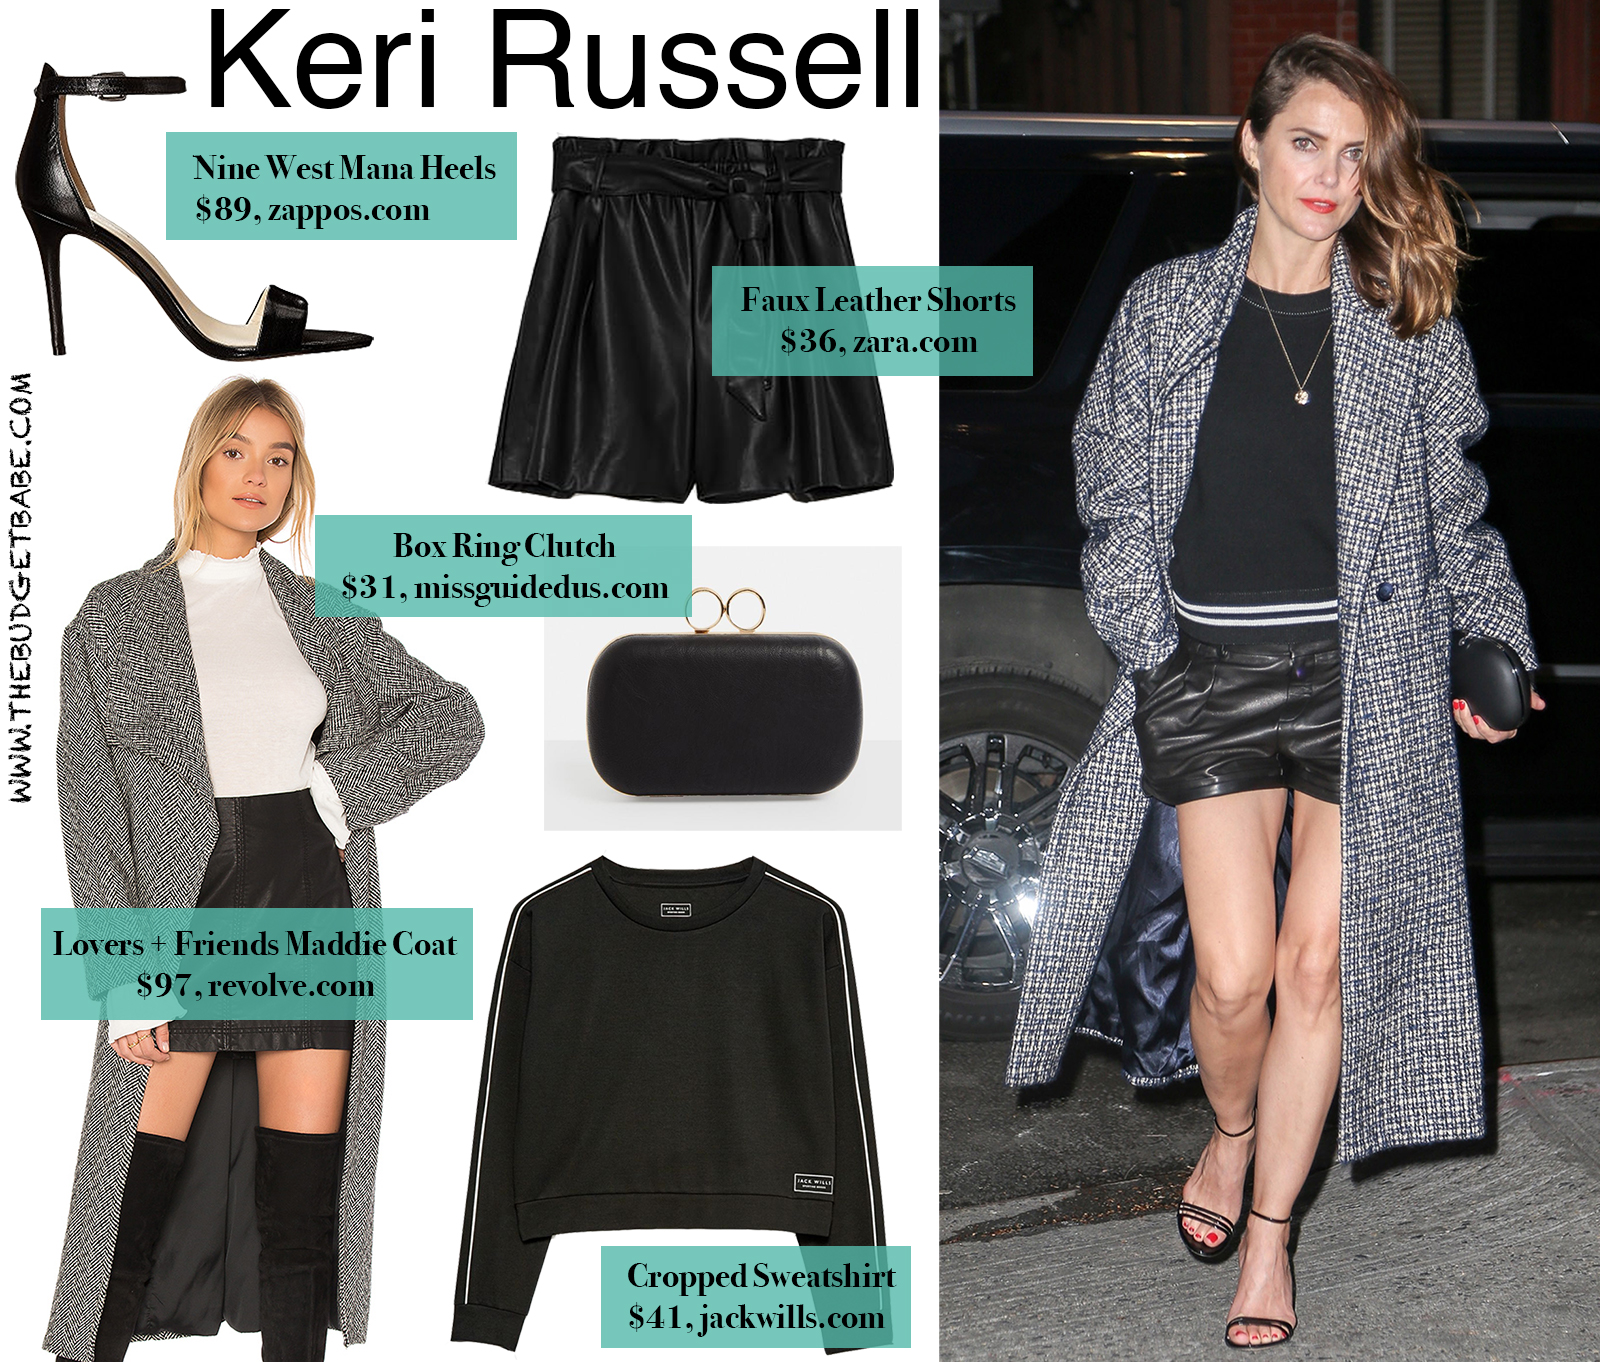 Keri Russell's Plaid Coat and Leather Shorts Look for Less